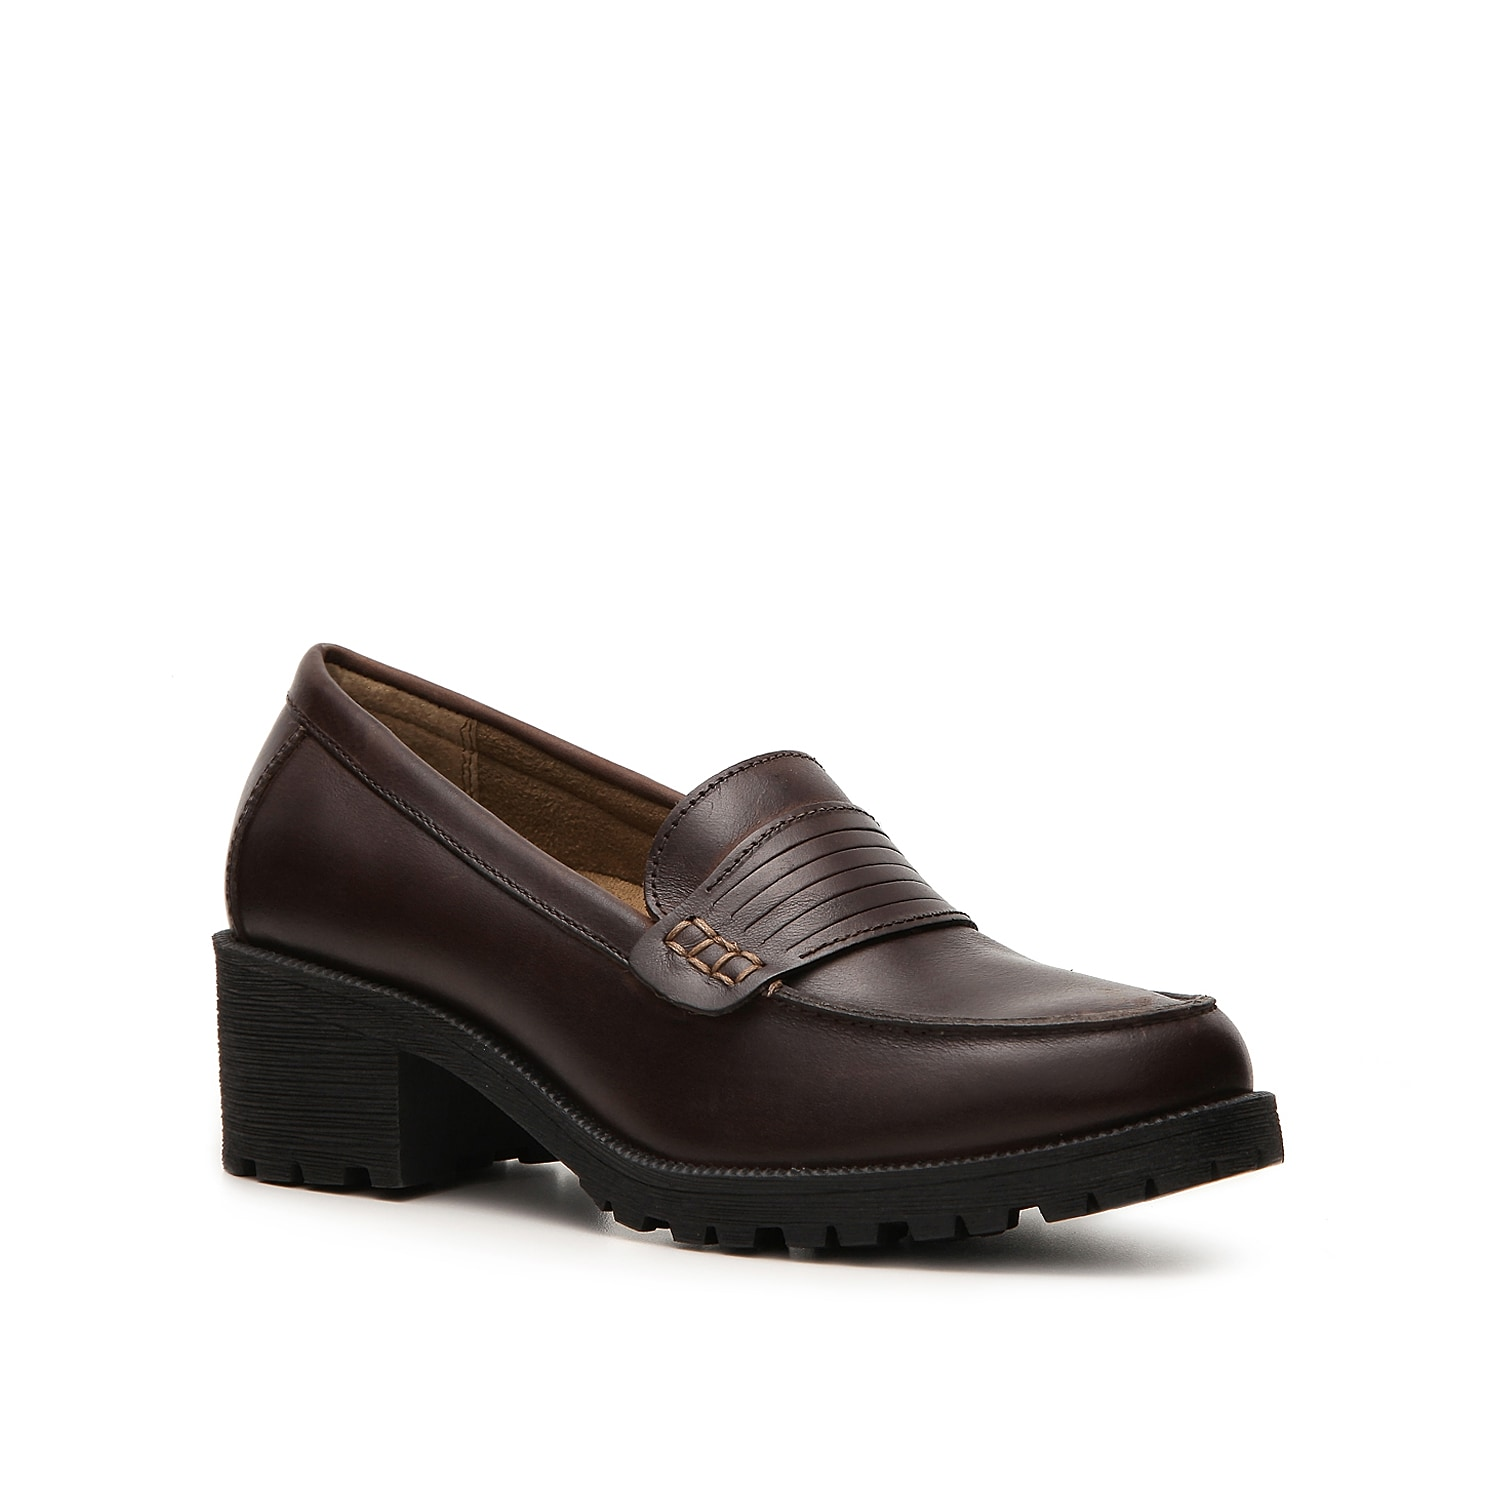 A casual shoe for a casual look! The Eastland Newbury loafer has classic styling and supportive construction for comfort and style.